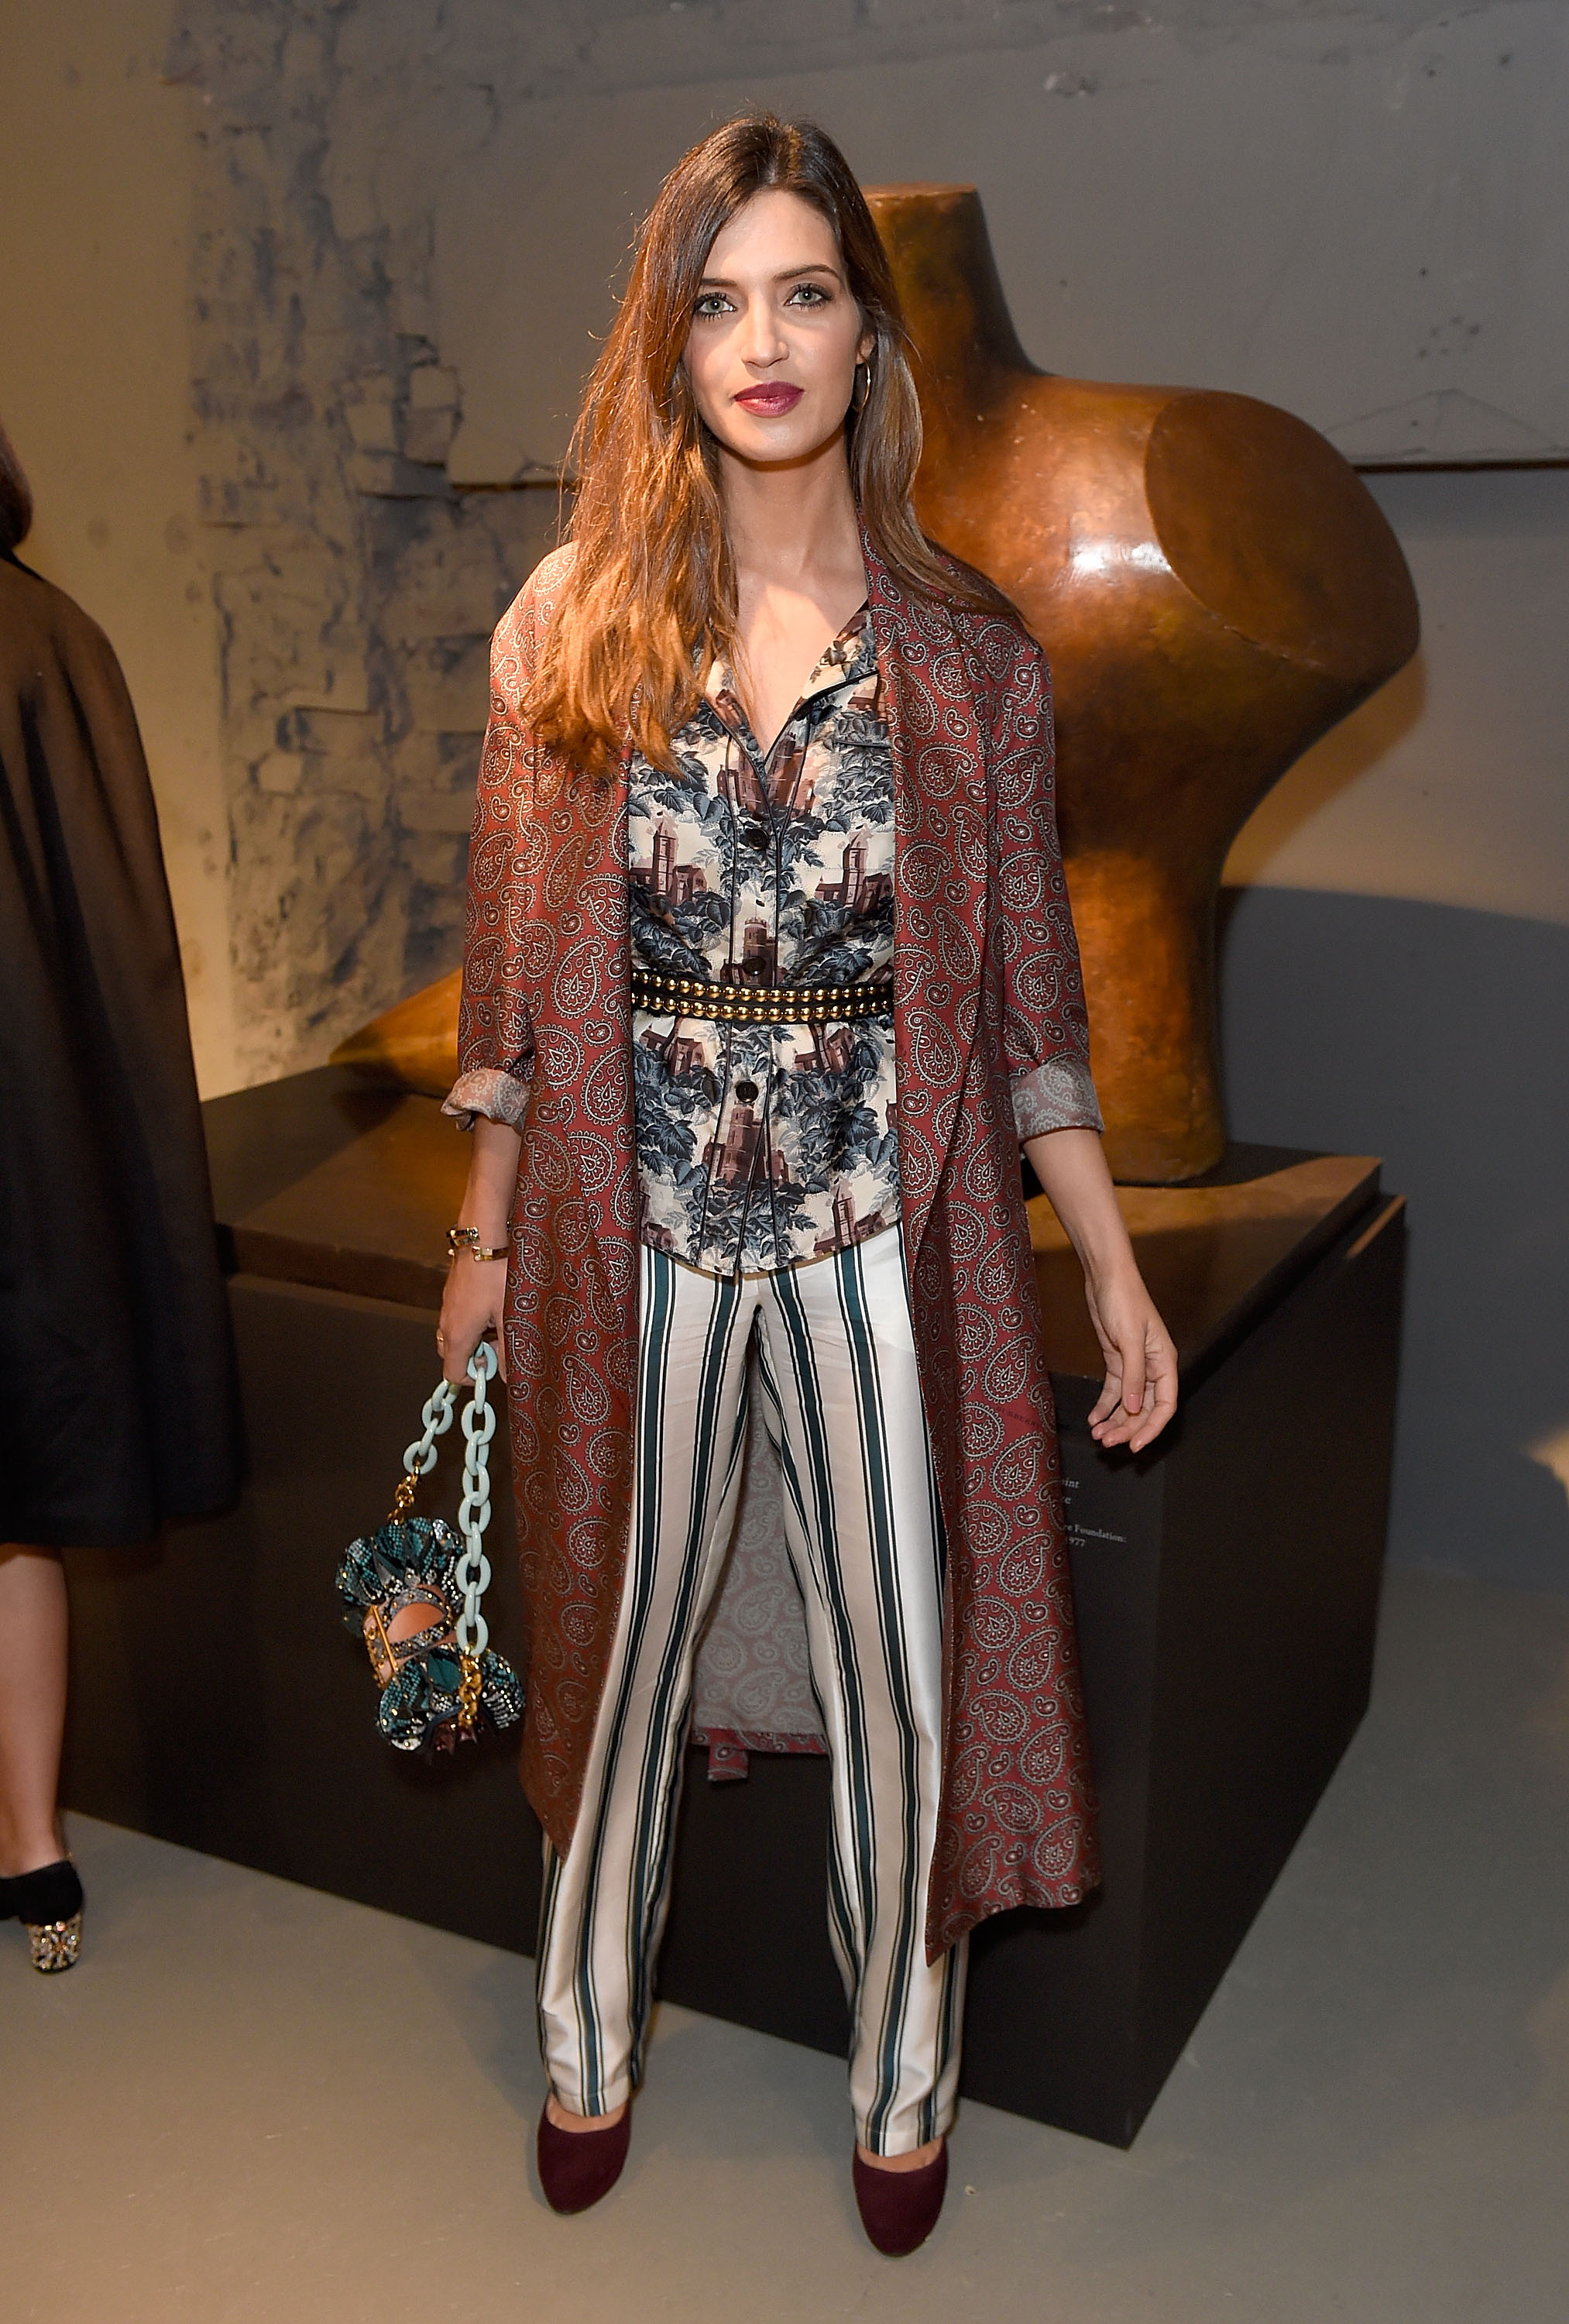 LONDON, ENGLAND - FEBRUARY 20:  Sara Carbonero wearing Burberry attends the Burberry February 2017 Show during London Fashion Week February 2017 at Makers House on February 20, 2017 in London, England.  (Photo by David M. Benett/Getty Images for Burberry) *** Local Caption *** Sara Carbonero